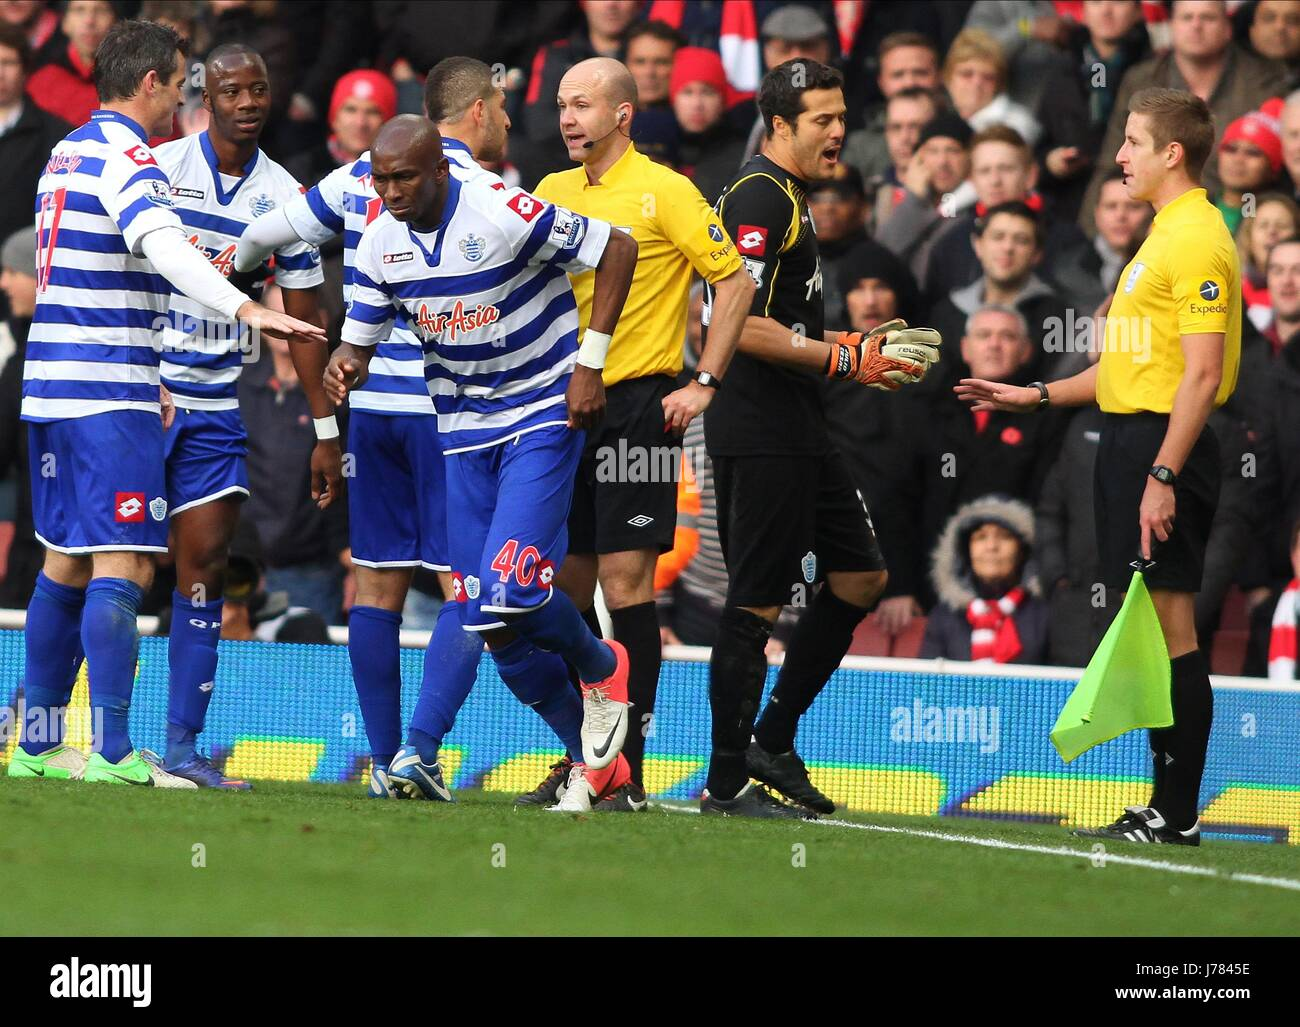 STEPHANE MBIA SENT OFF ARSENAL V QUEENS PARK RANGERS LONDON ENGLAND UK 27 October 2012 - Stock Image